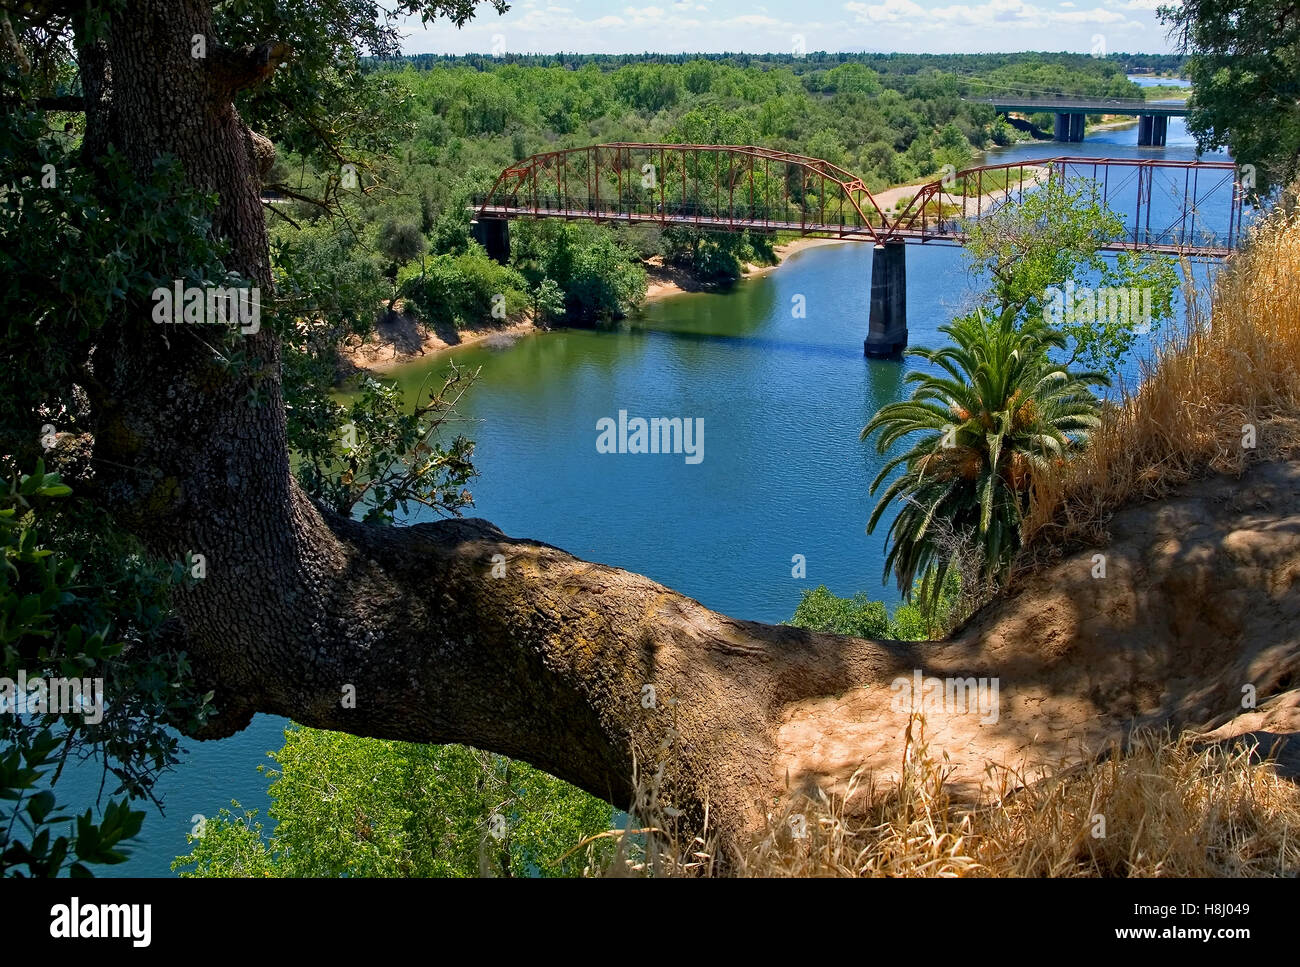 Old Red Bridge over the American River in Fair Oaks California - Stock Image